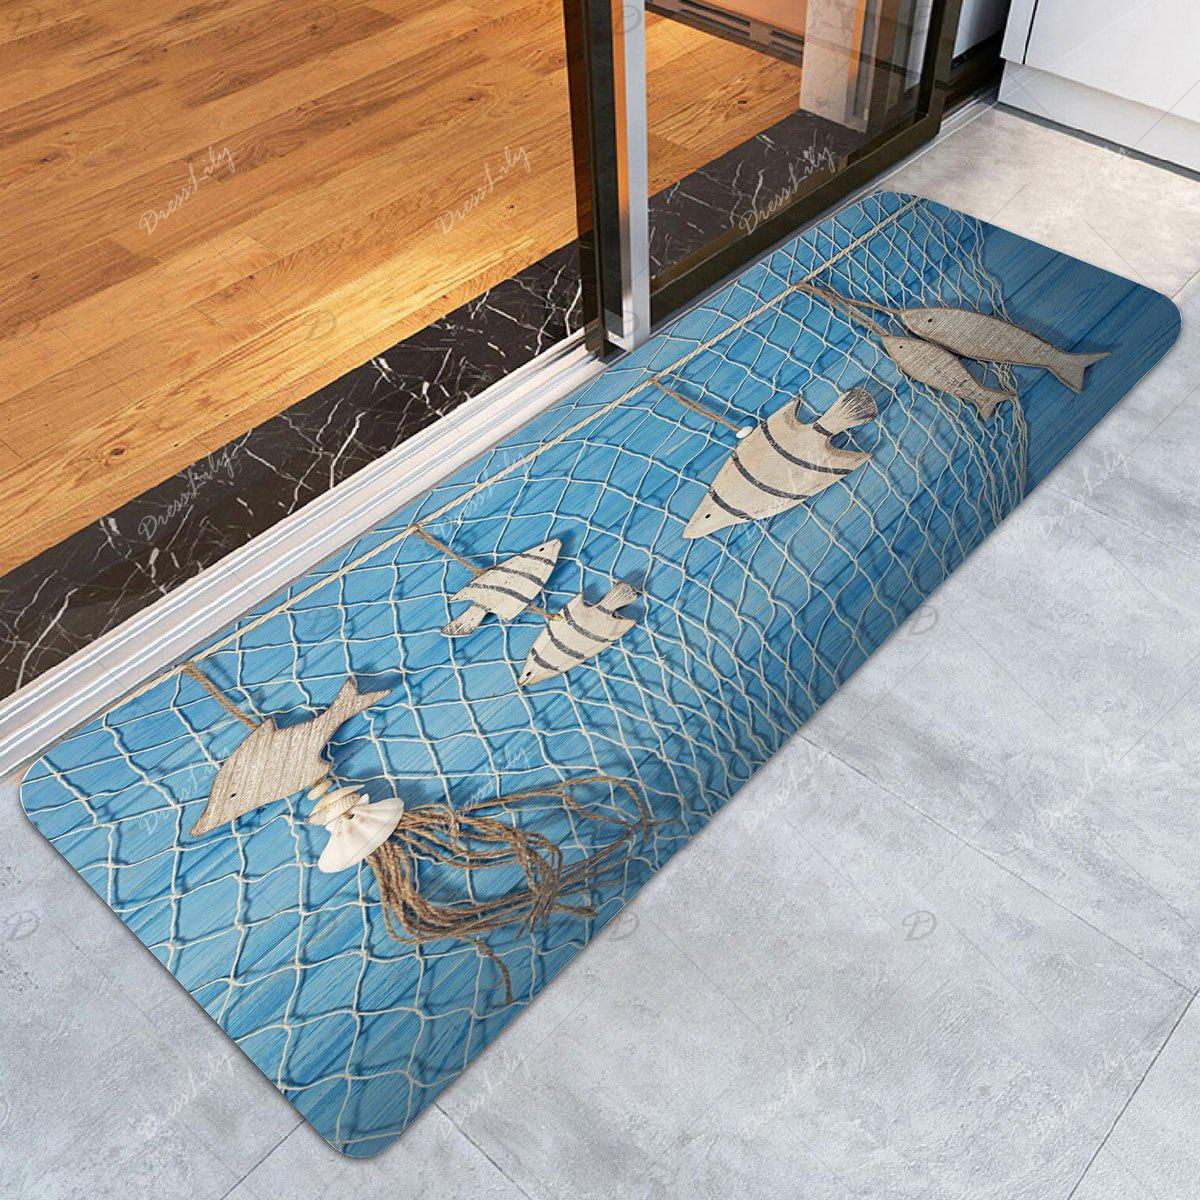 2018 Wood Fish Fishing Net Print Bath Rug LIGHT BLUE W